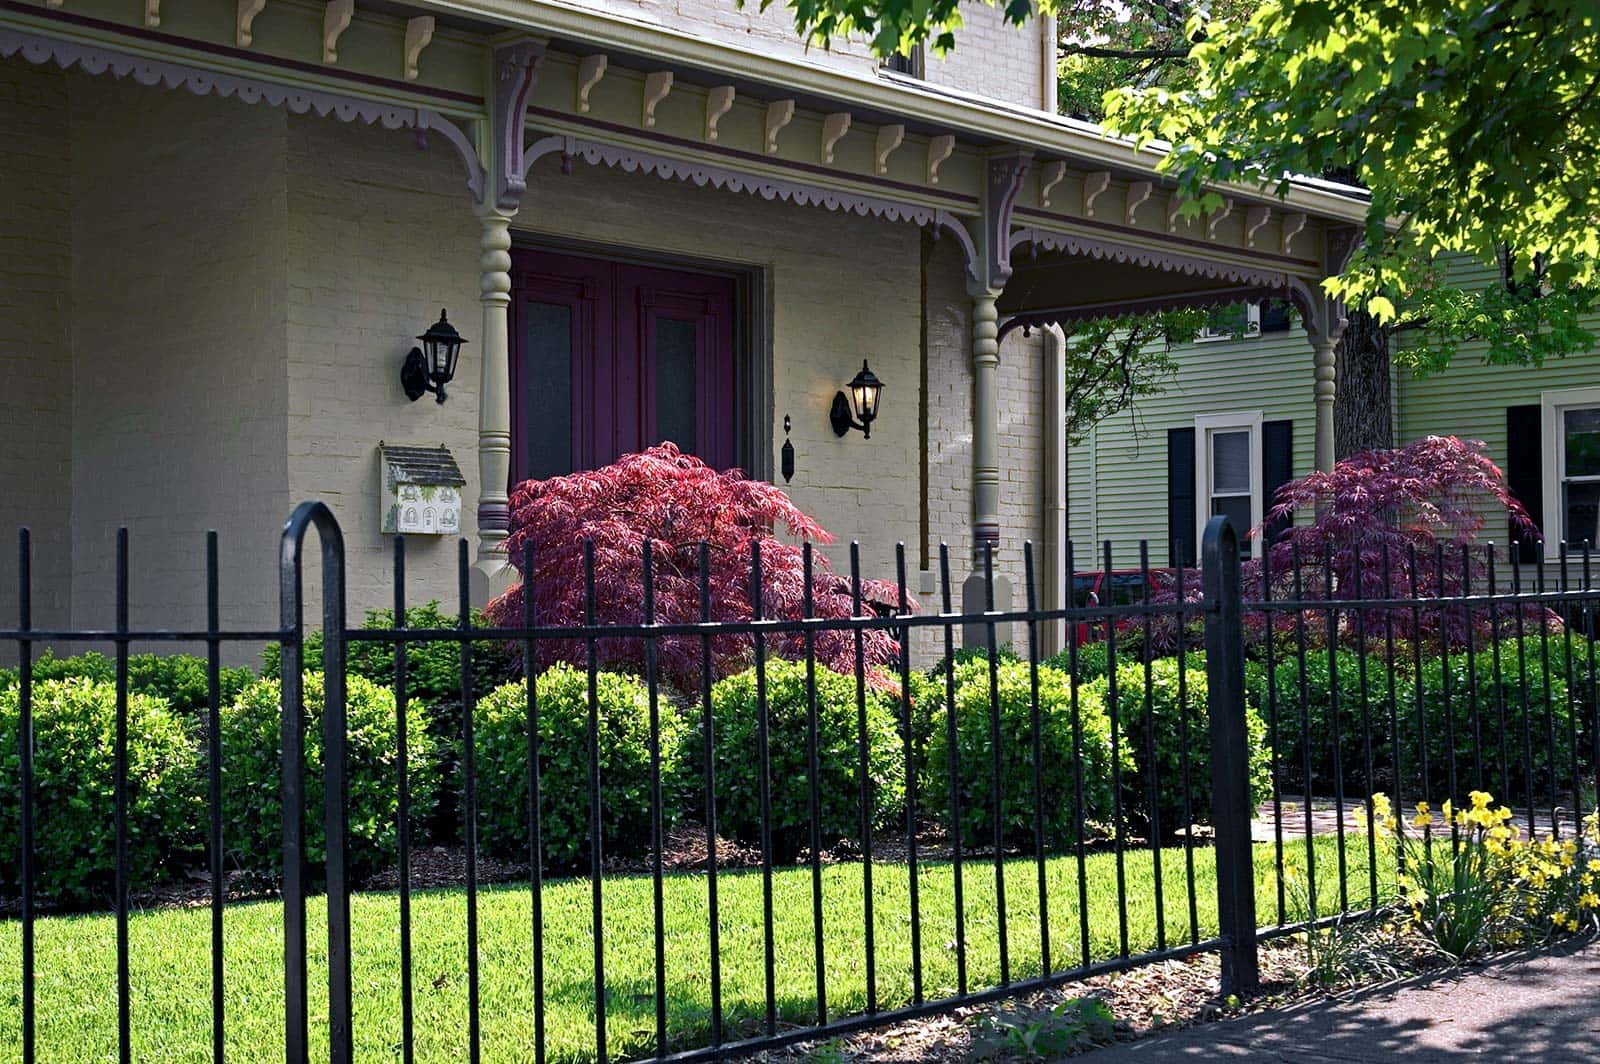 Iron ornamental fence that is defining an area while giving great curb appeal to the home and yard